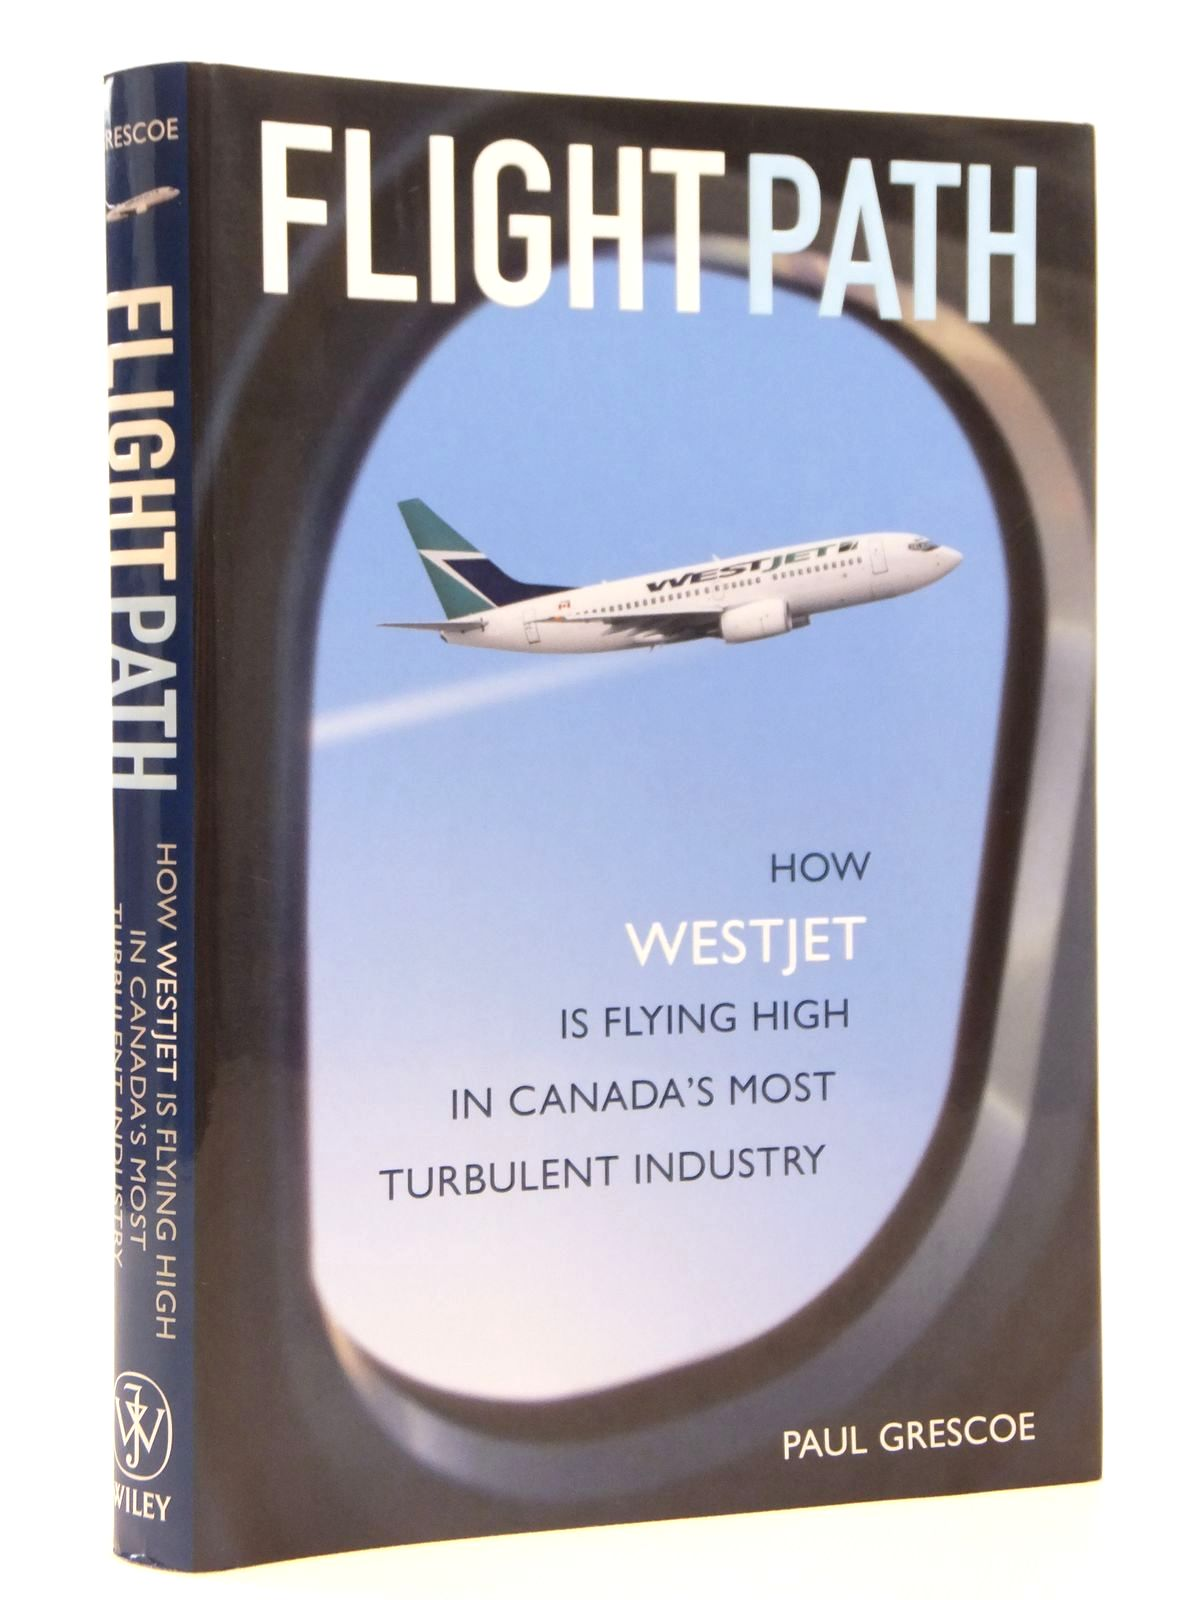 Photo of FLIGHTPATH HOW WESTJET IS FLYING HIGH IN CANADA'S MOST TURBULENT INDUSTRY written by Grescoe, Paul published by John Wiley & Sons Canada Limited (STOCK CODE: 2121715)  for sale by Stella & Rose's Books